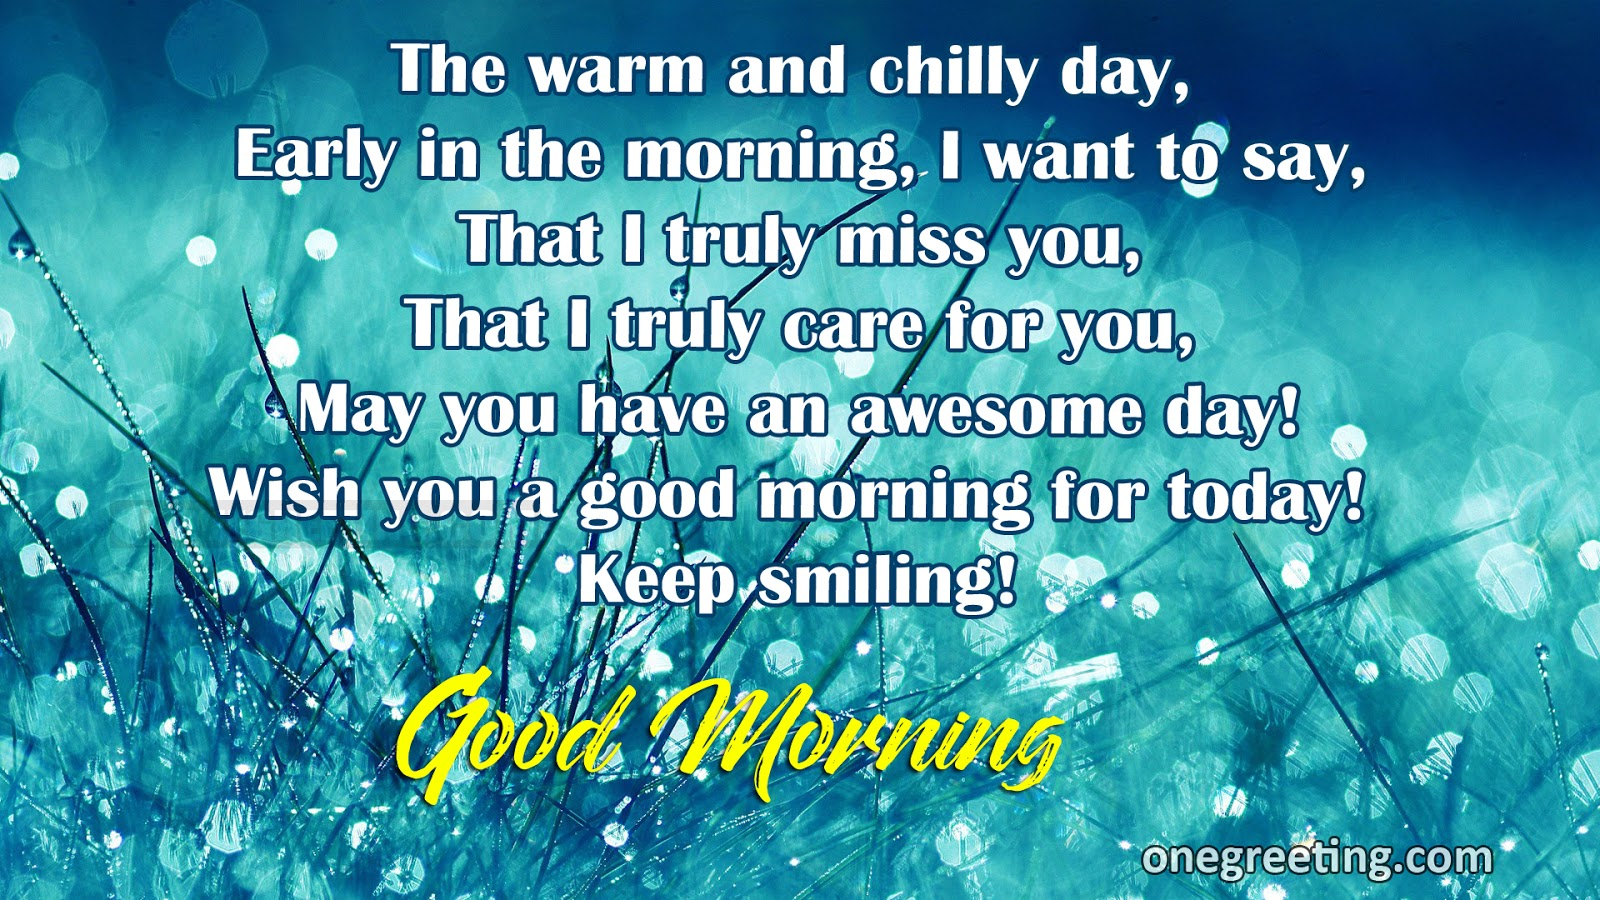 The Warm And Chilly Day Good Morning One Greeting